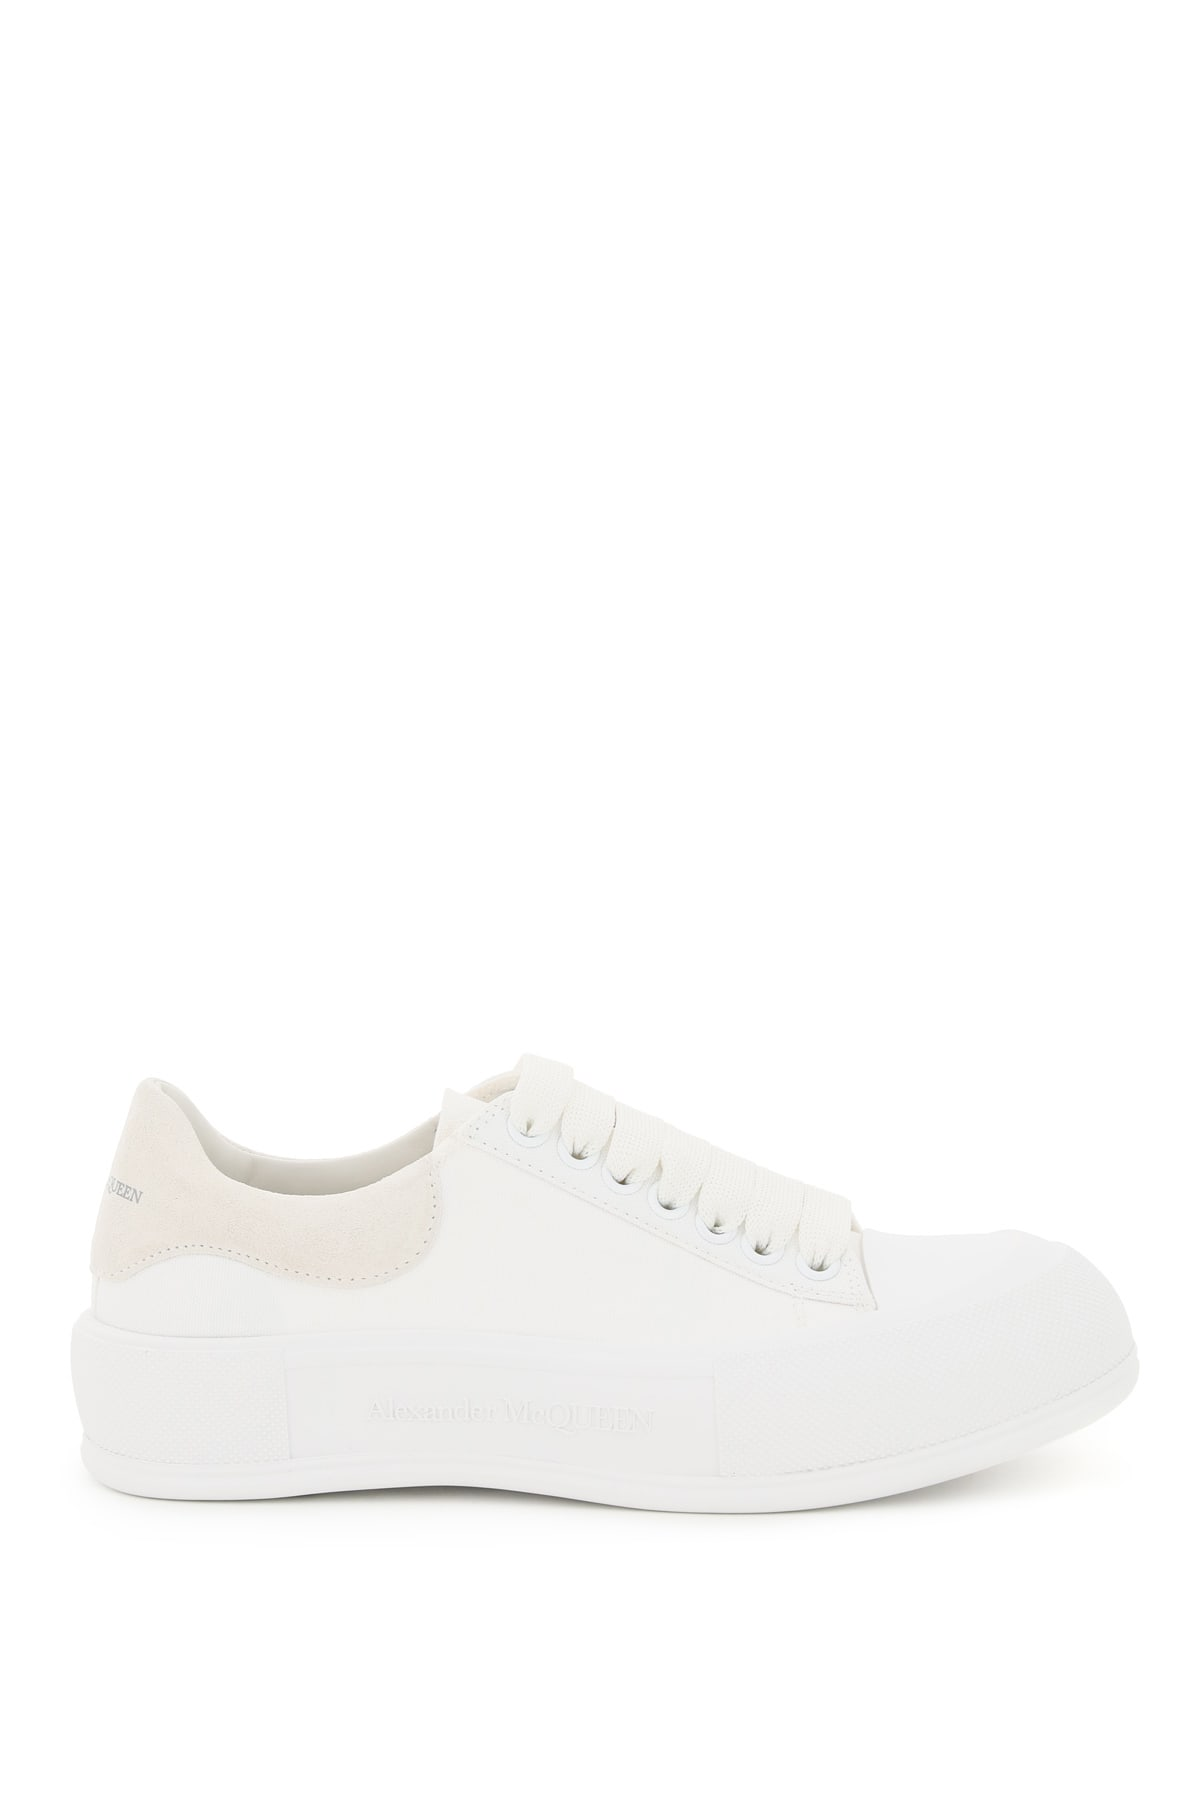 Buy Alexander McQueen Canvas Skate Sneakers online, shop Alexander McQueen shoes with free shipping